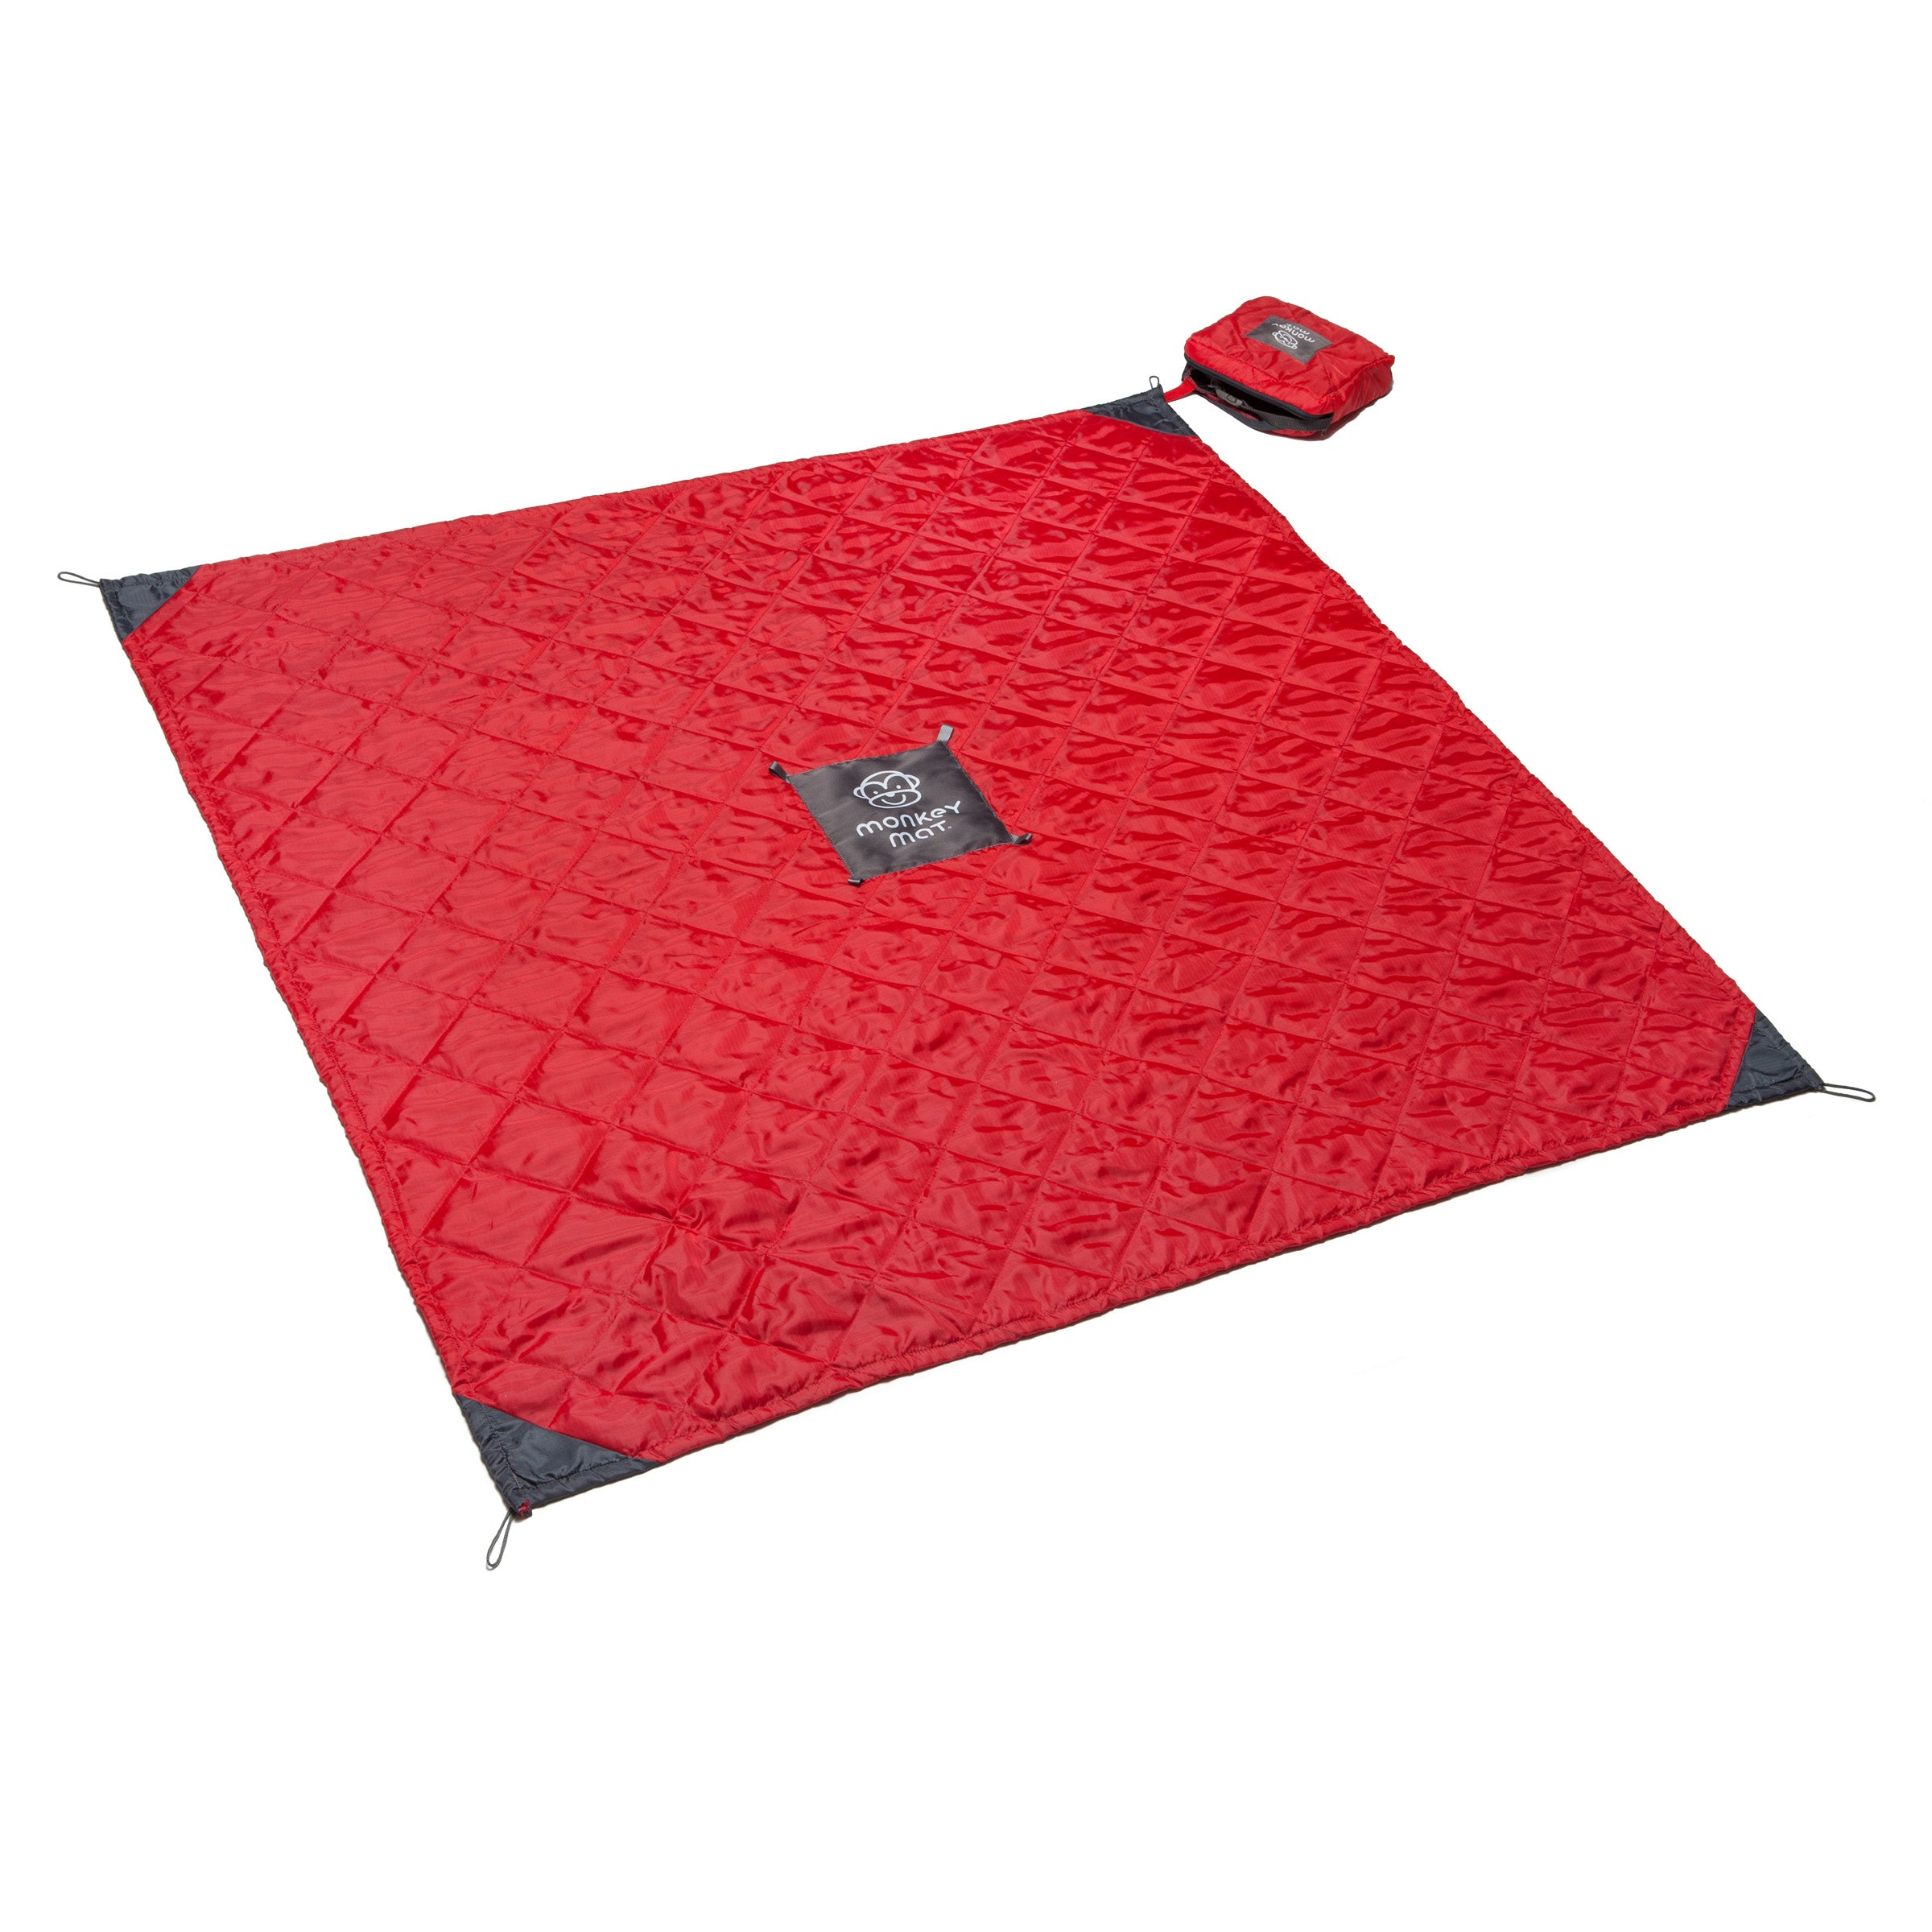 helpful best mat lightspeed camping reviews flexform pads camp pcr outdoors dark and plush customer xl self pad blue inflating super in rated sleep